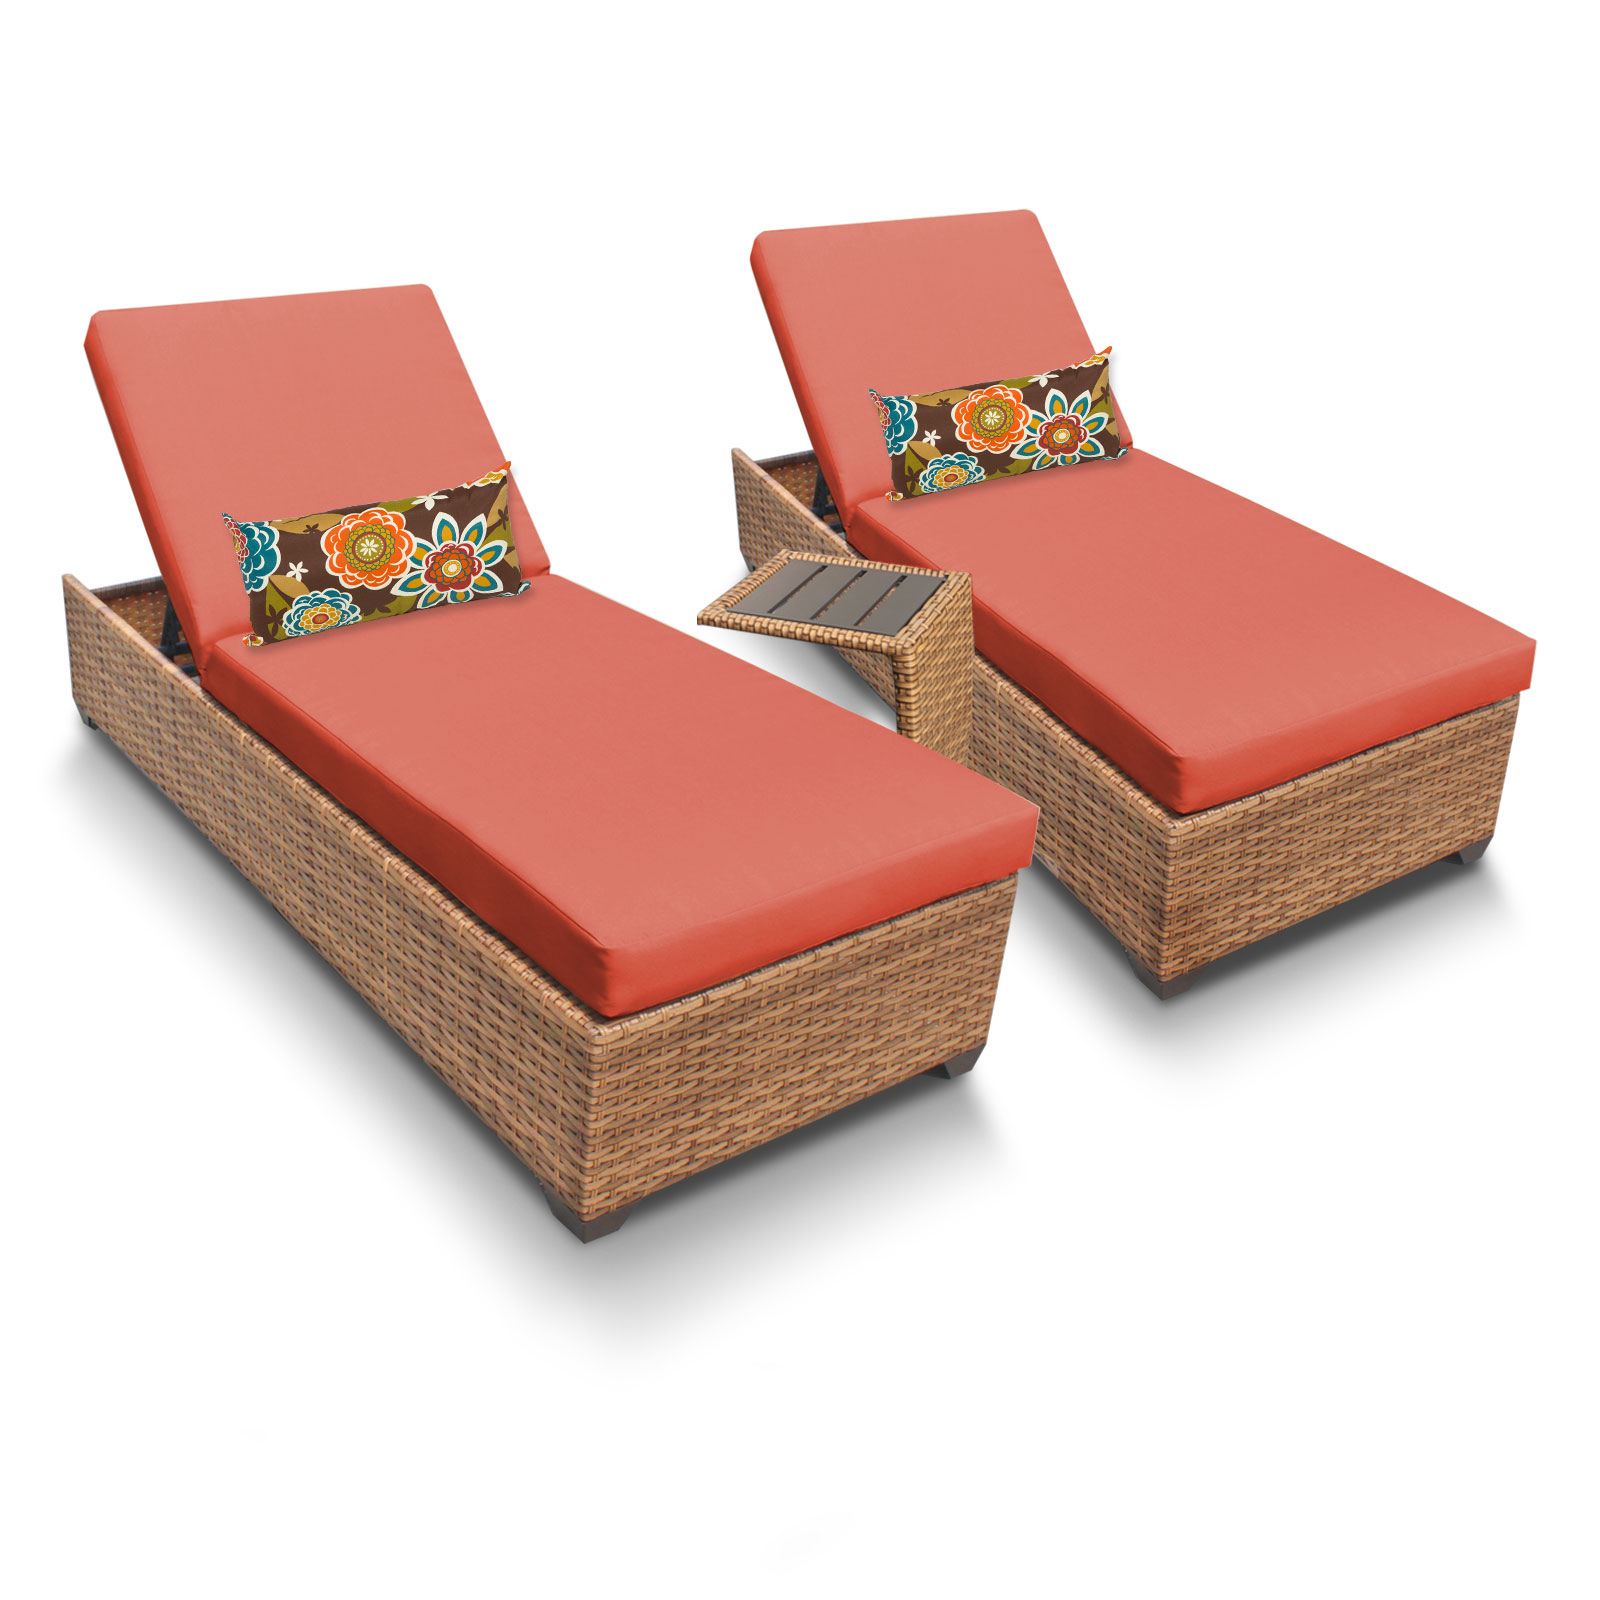 Tuscan Chaise Set of 2 Outdoor Wicker Patio Furniture With Side Table